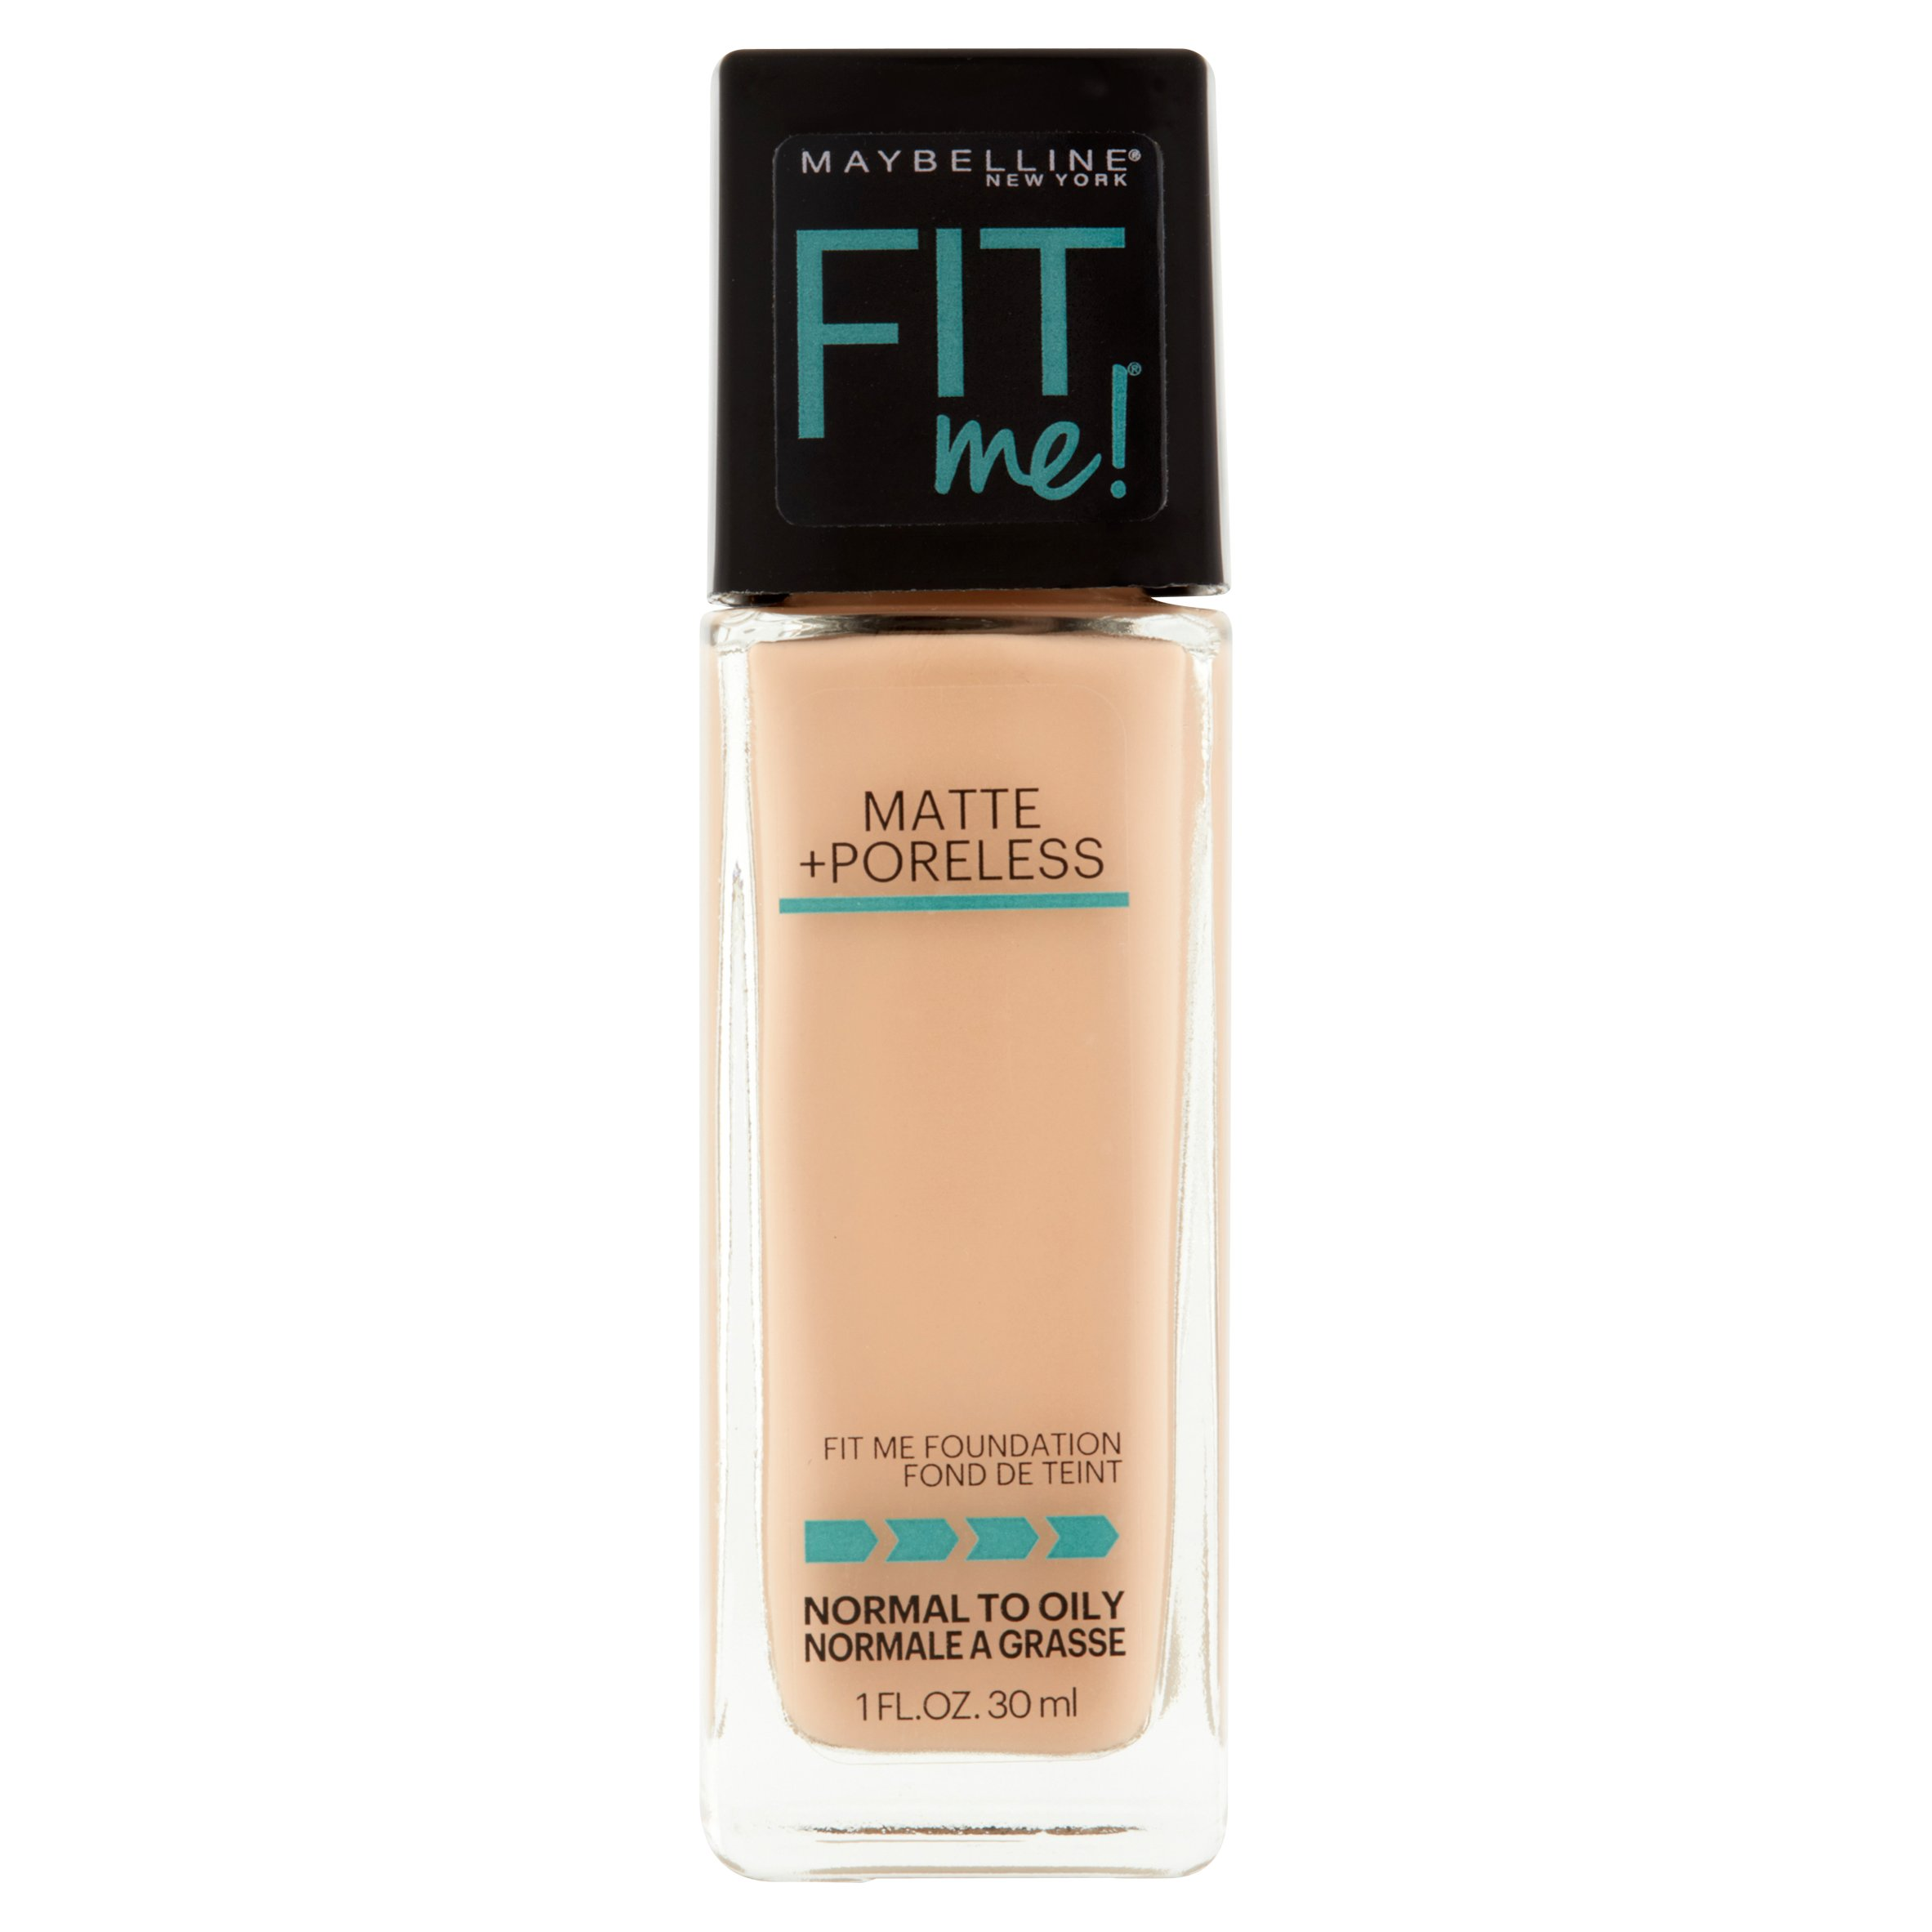 Maybelline New York Fit Me Matte + Poreless Foundation, 120 Classic Ivory, 1.0 fl oz